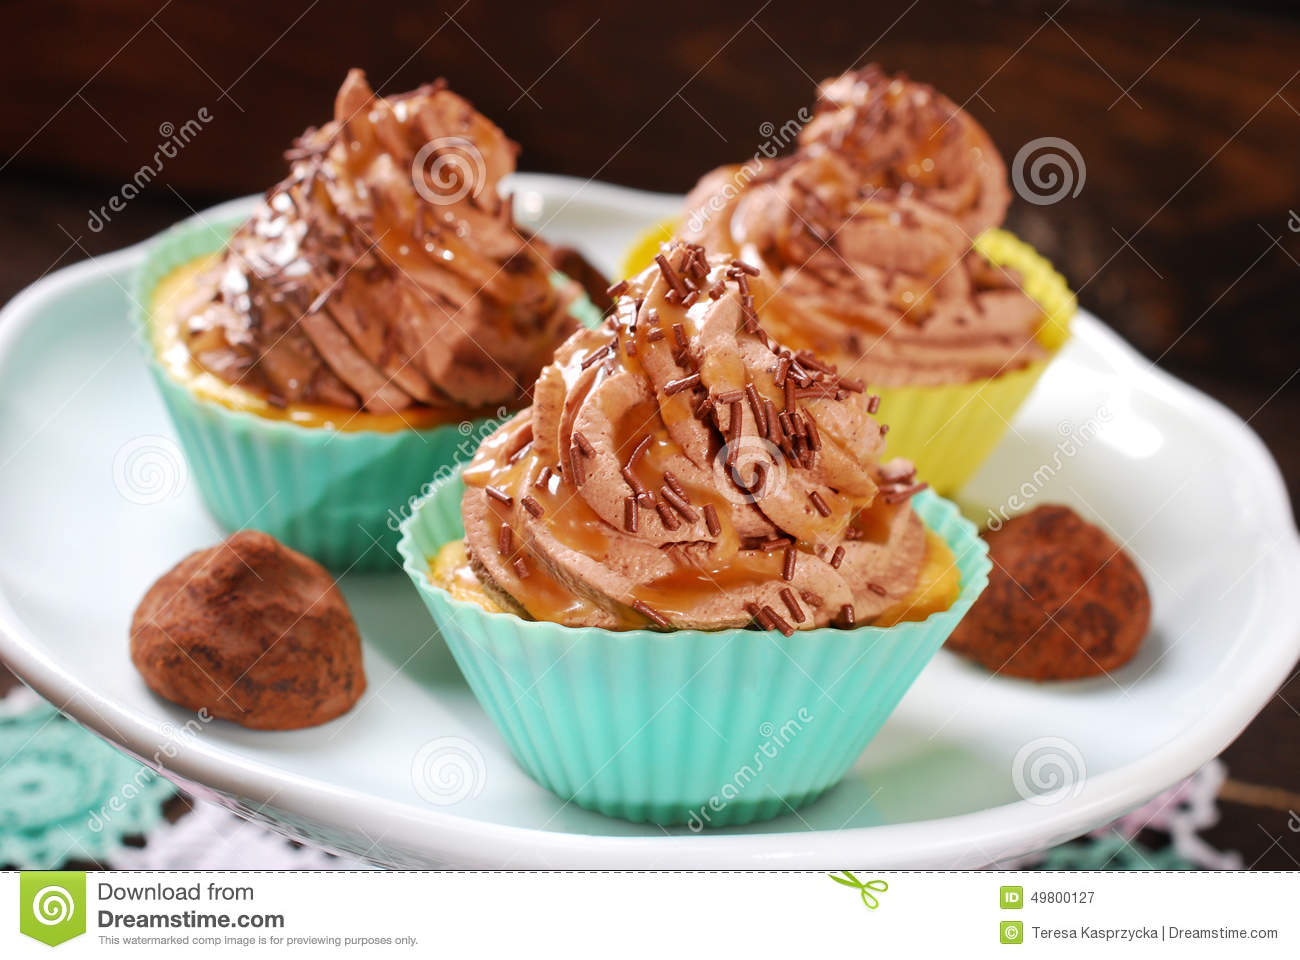 Cupcakes With Truffle Cream And Caramel Stock Photo - Image: 49800127